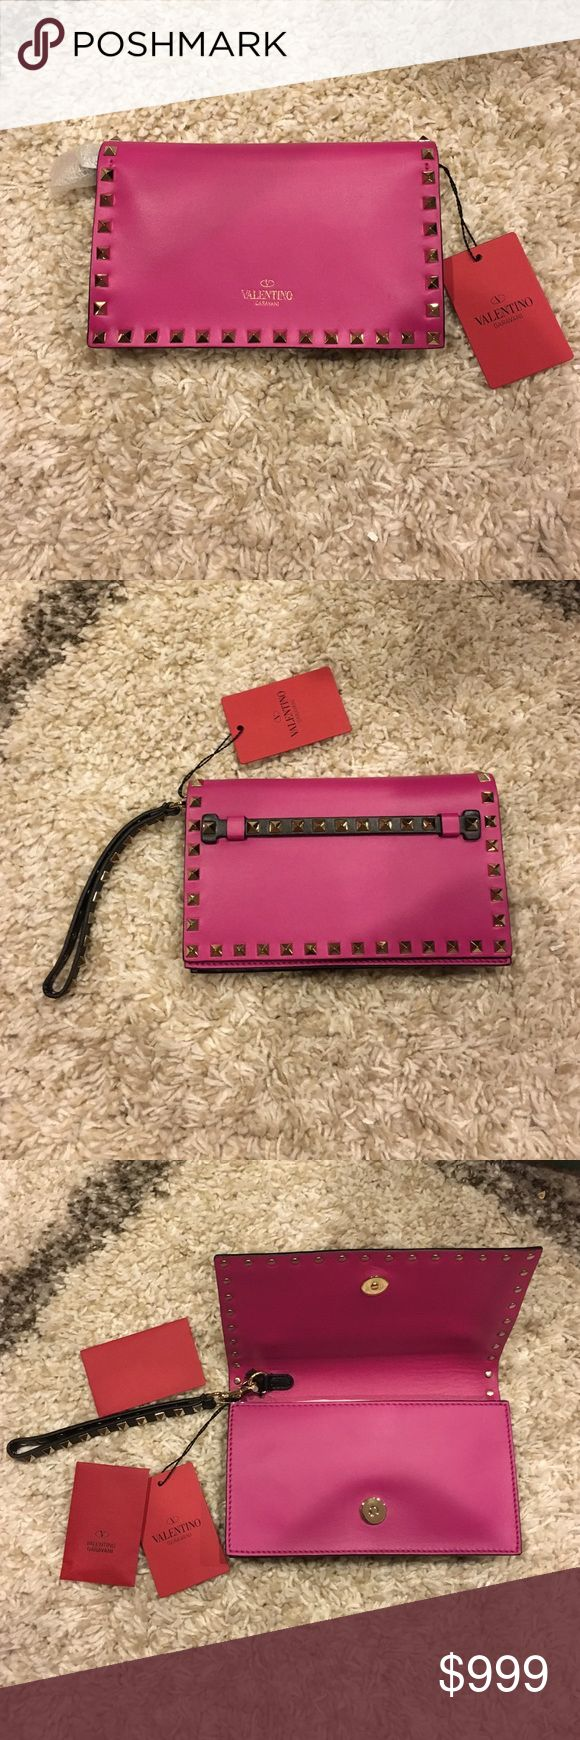 Valentino Fushia/Black small Rockstud clutch Gorgeous, brand new, never used.  Has all tags and dustbag (not pictured).  2 inside pockets.  Supple buttery leather.  Total statement piece.  NO LOWBALLING.  Can do a little better off posh if interested.  NO Trades.  Also pics demonstrate shadows.  No dents.  Pristine! Valentino Bags Baby Bags